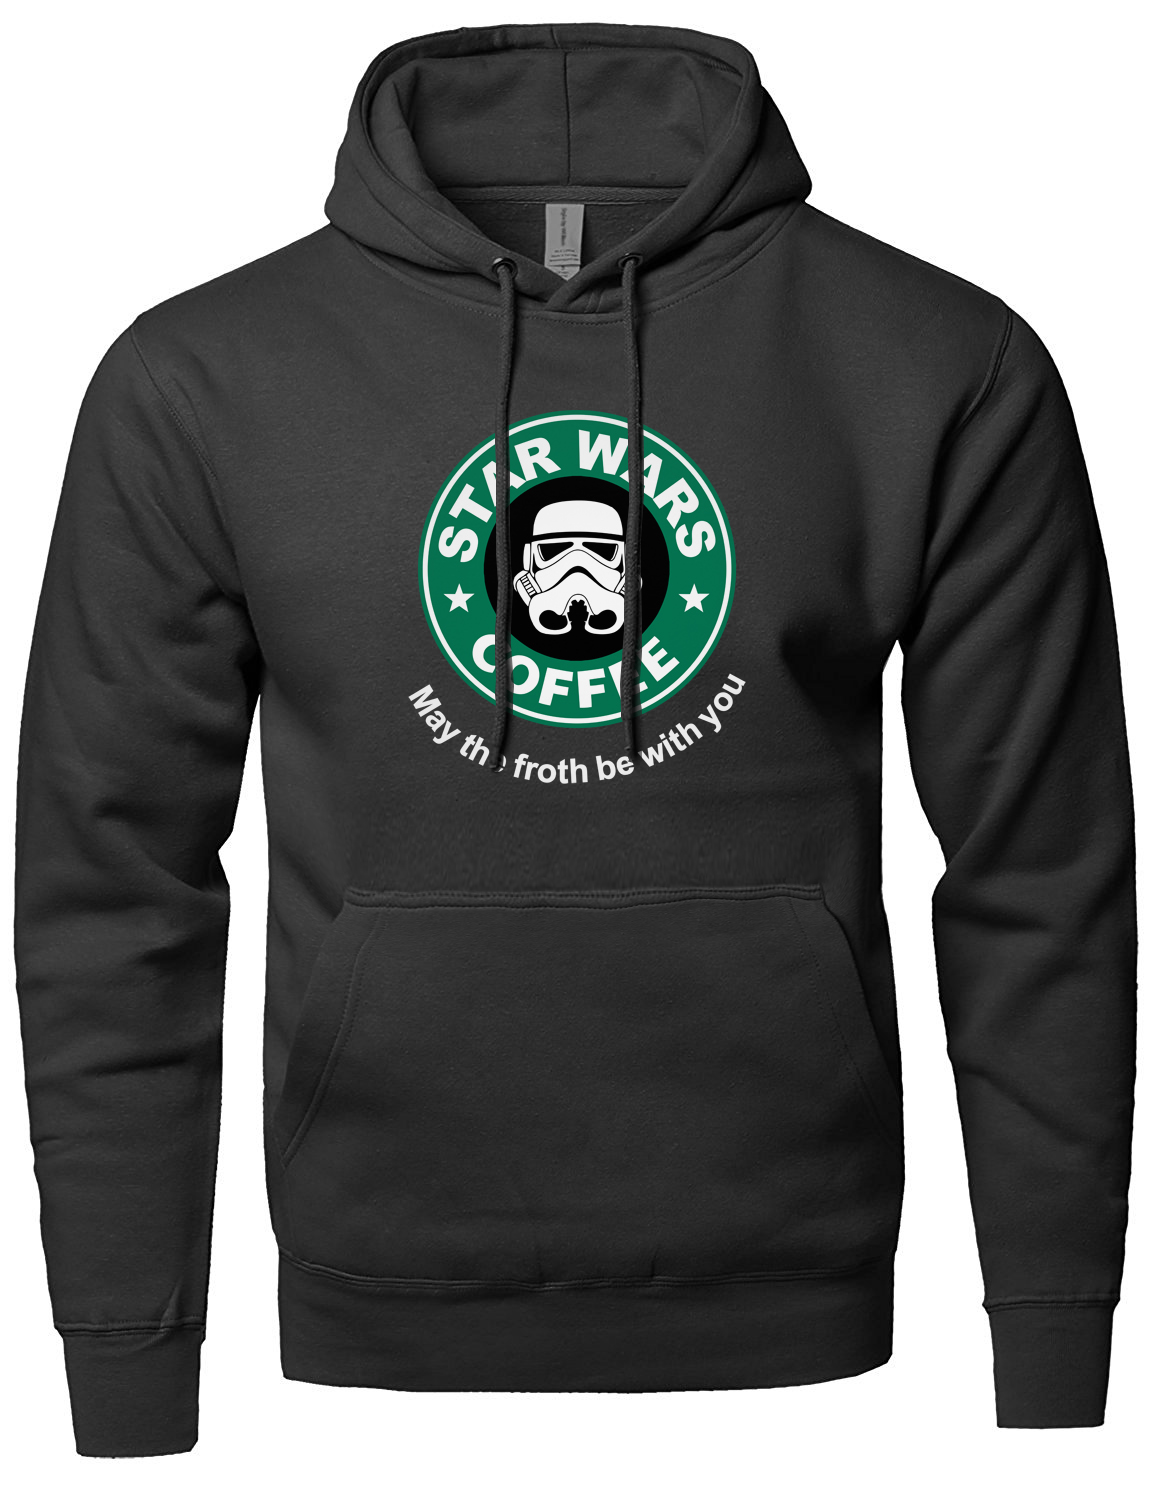 hot sale hoodie men Star Wars fashion brand-clothing 2019 new spring winter men sweatshirts fleece hooded men sudadera hombre